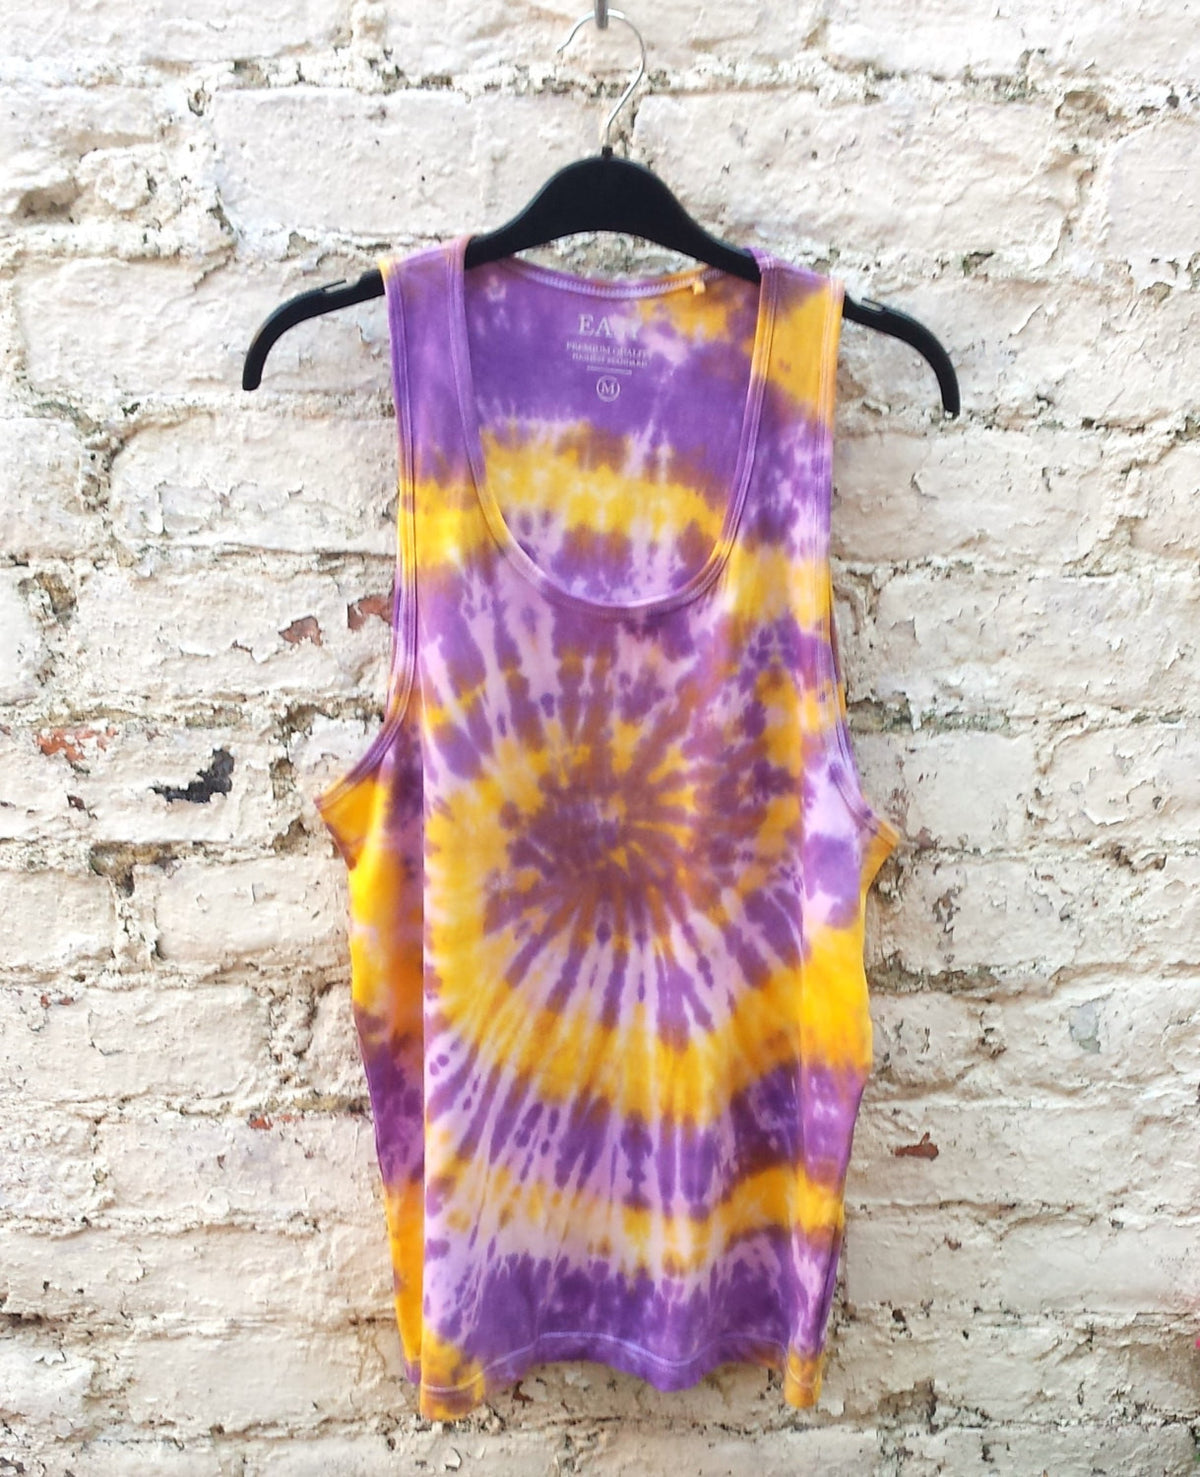 Mens Tank Tie Dye Tank Top Yellow & Purple Spiral Tie Dye ALL SIZES Hippie Boho Festival Mens Tanks Yoga Men Gym Tanks gift for man tie dye